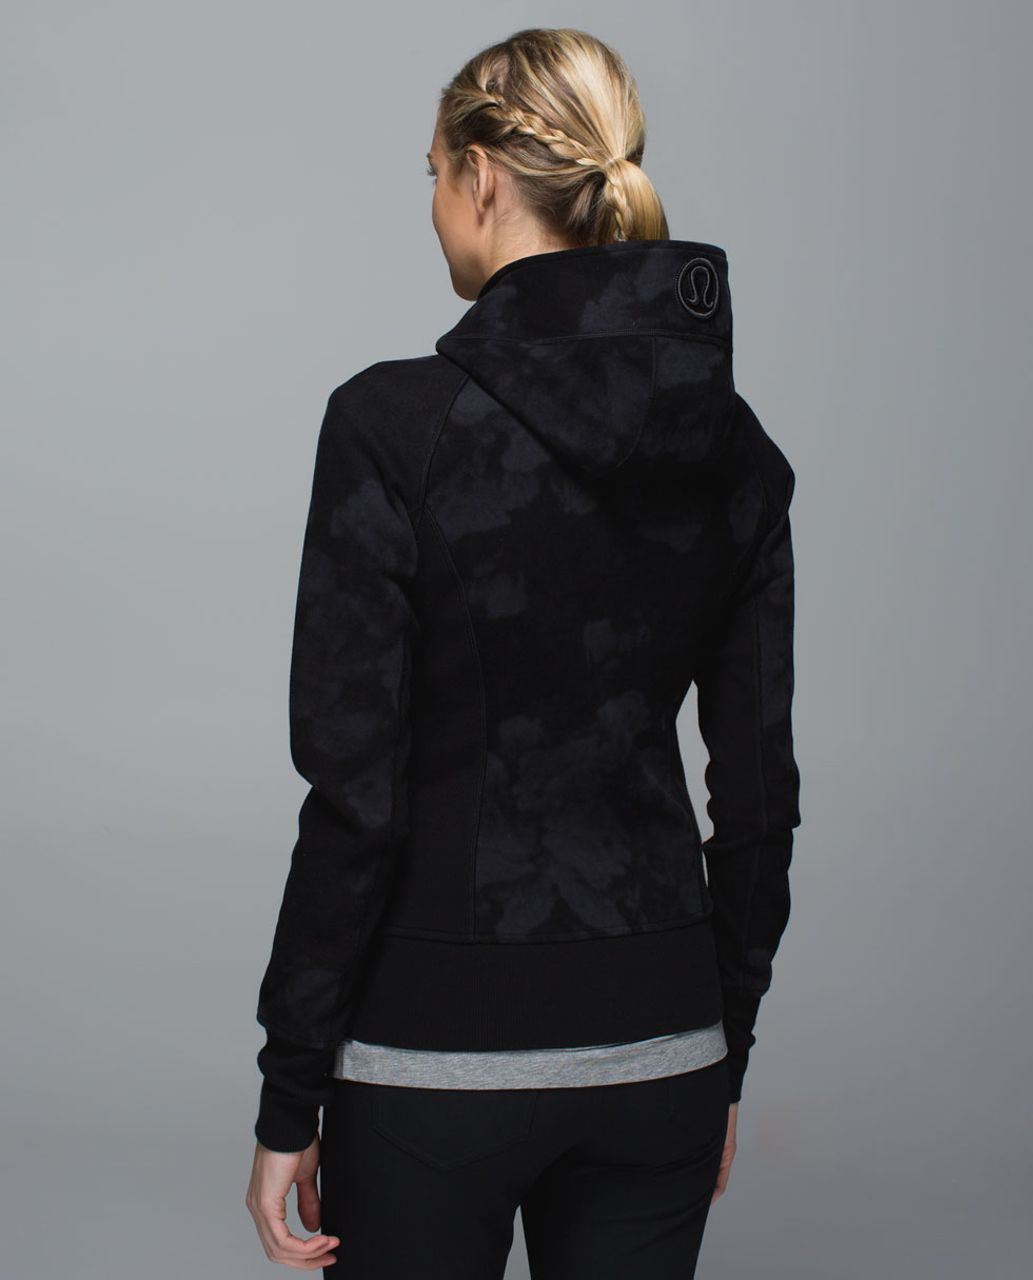 Lululemon Scuba Hoodie II - Dream Rose Deep Coal Black / Deep Coal